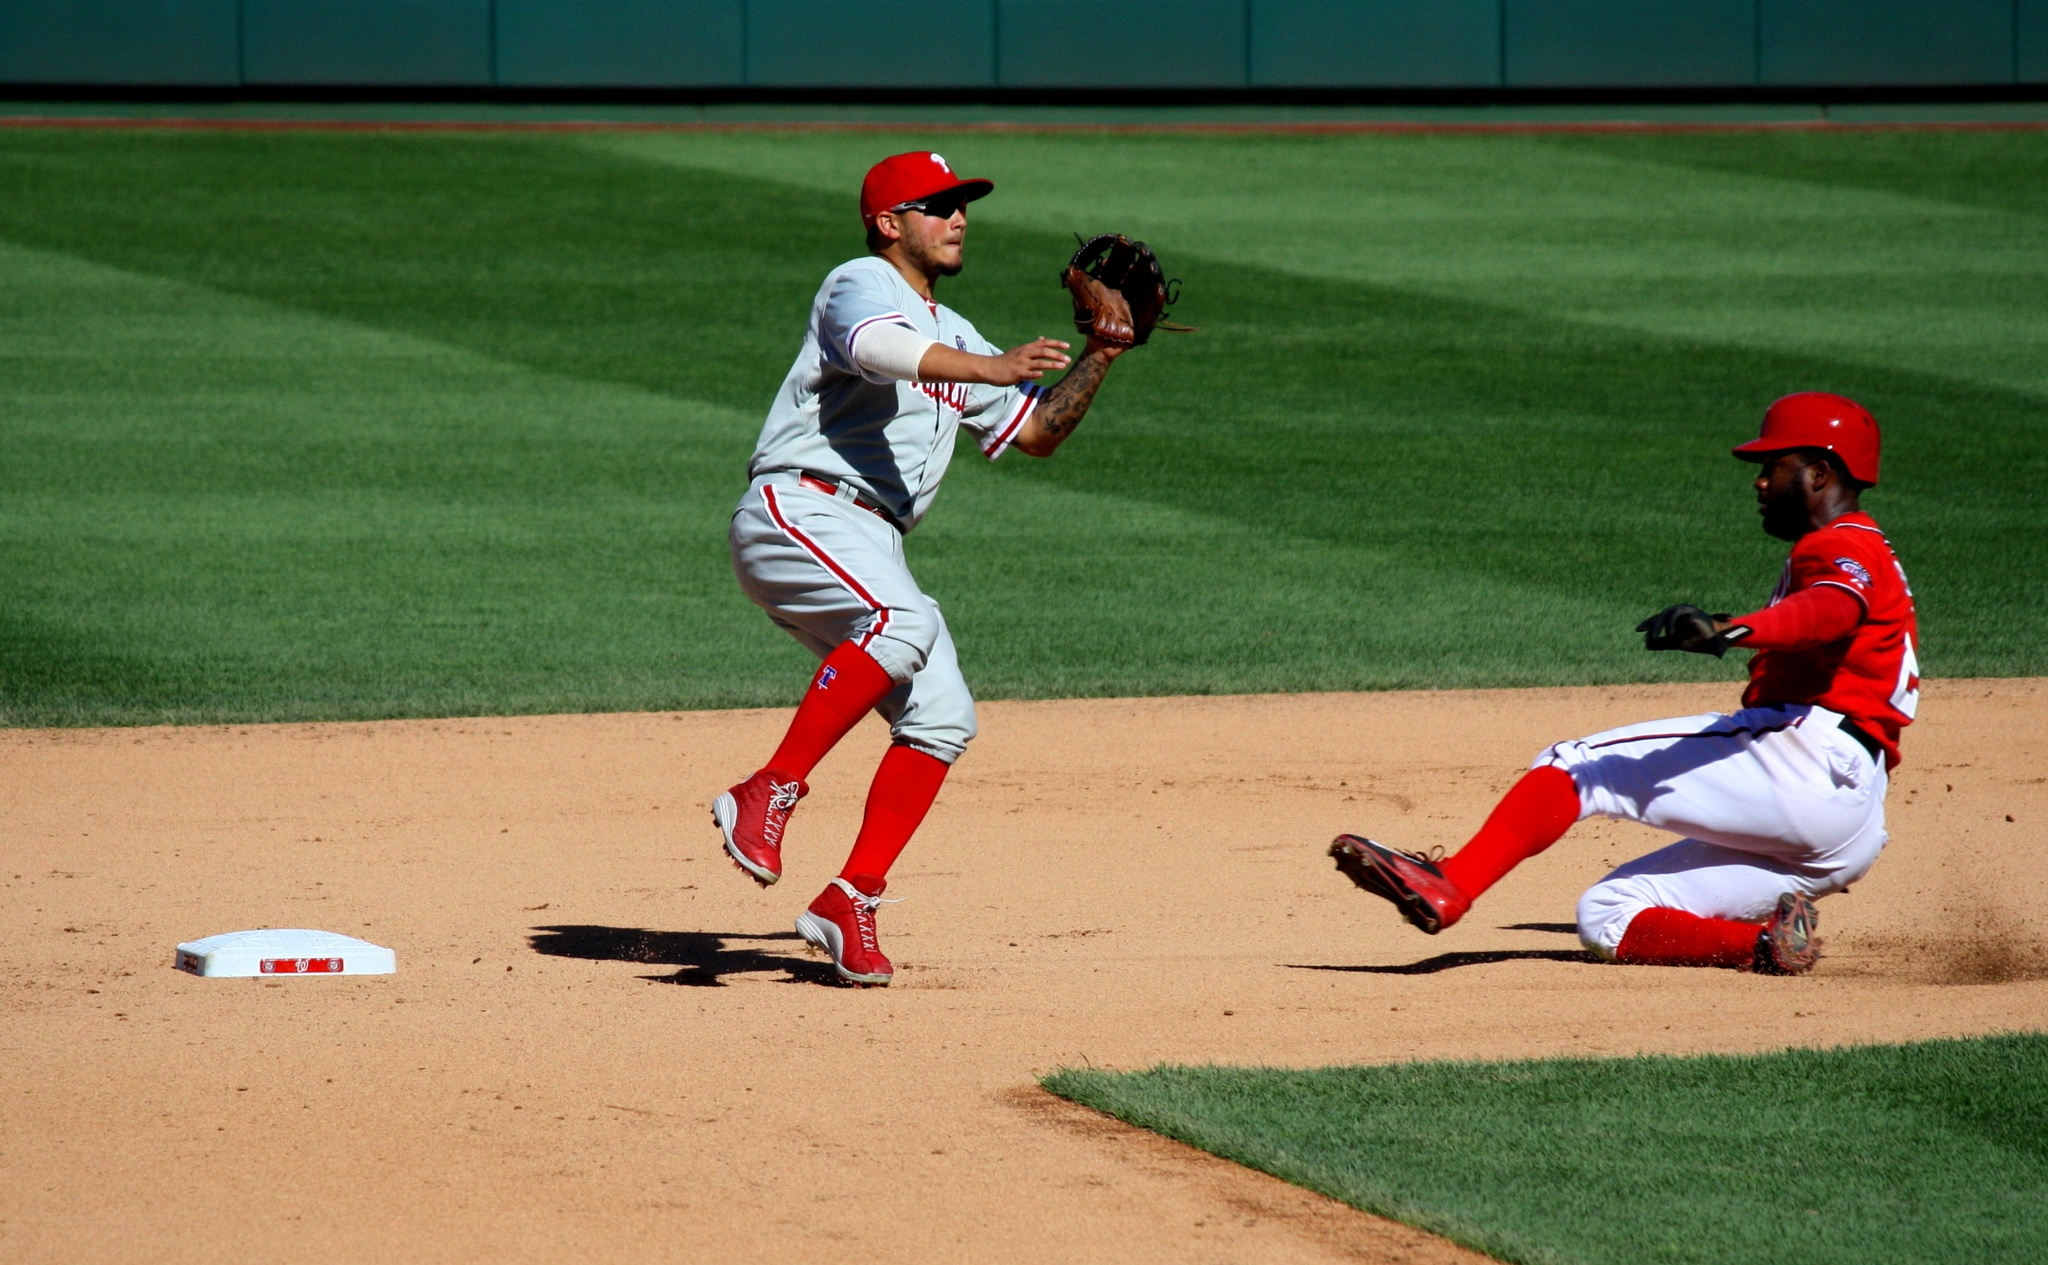 stealing second base by paul sikorski